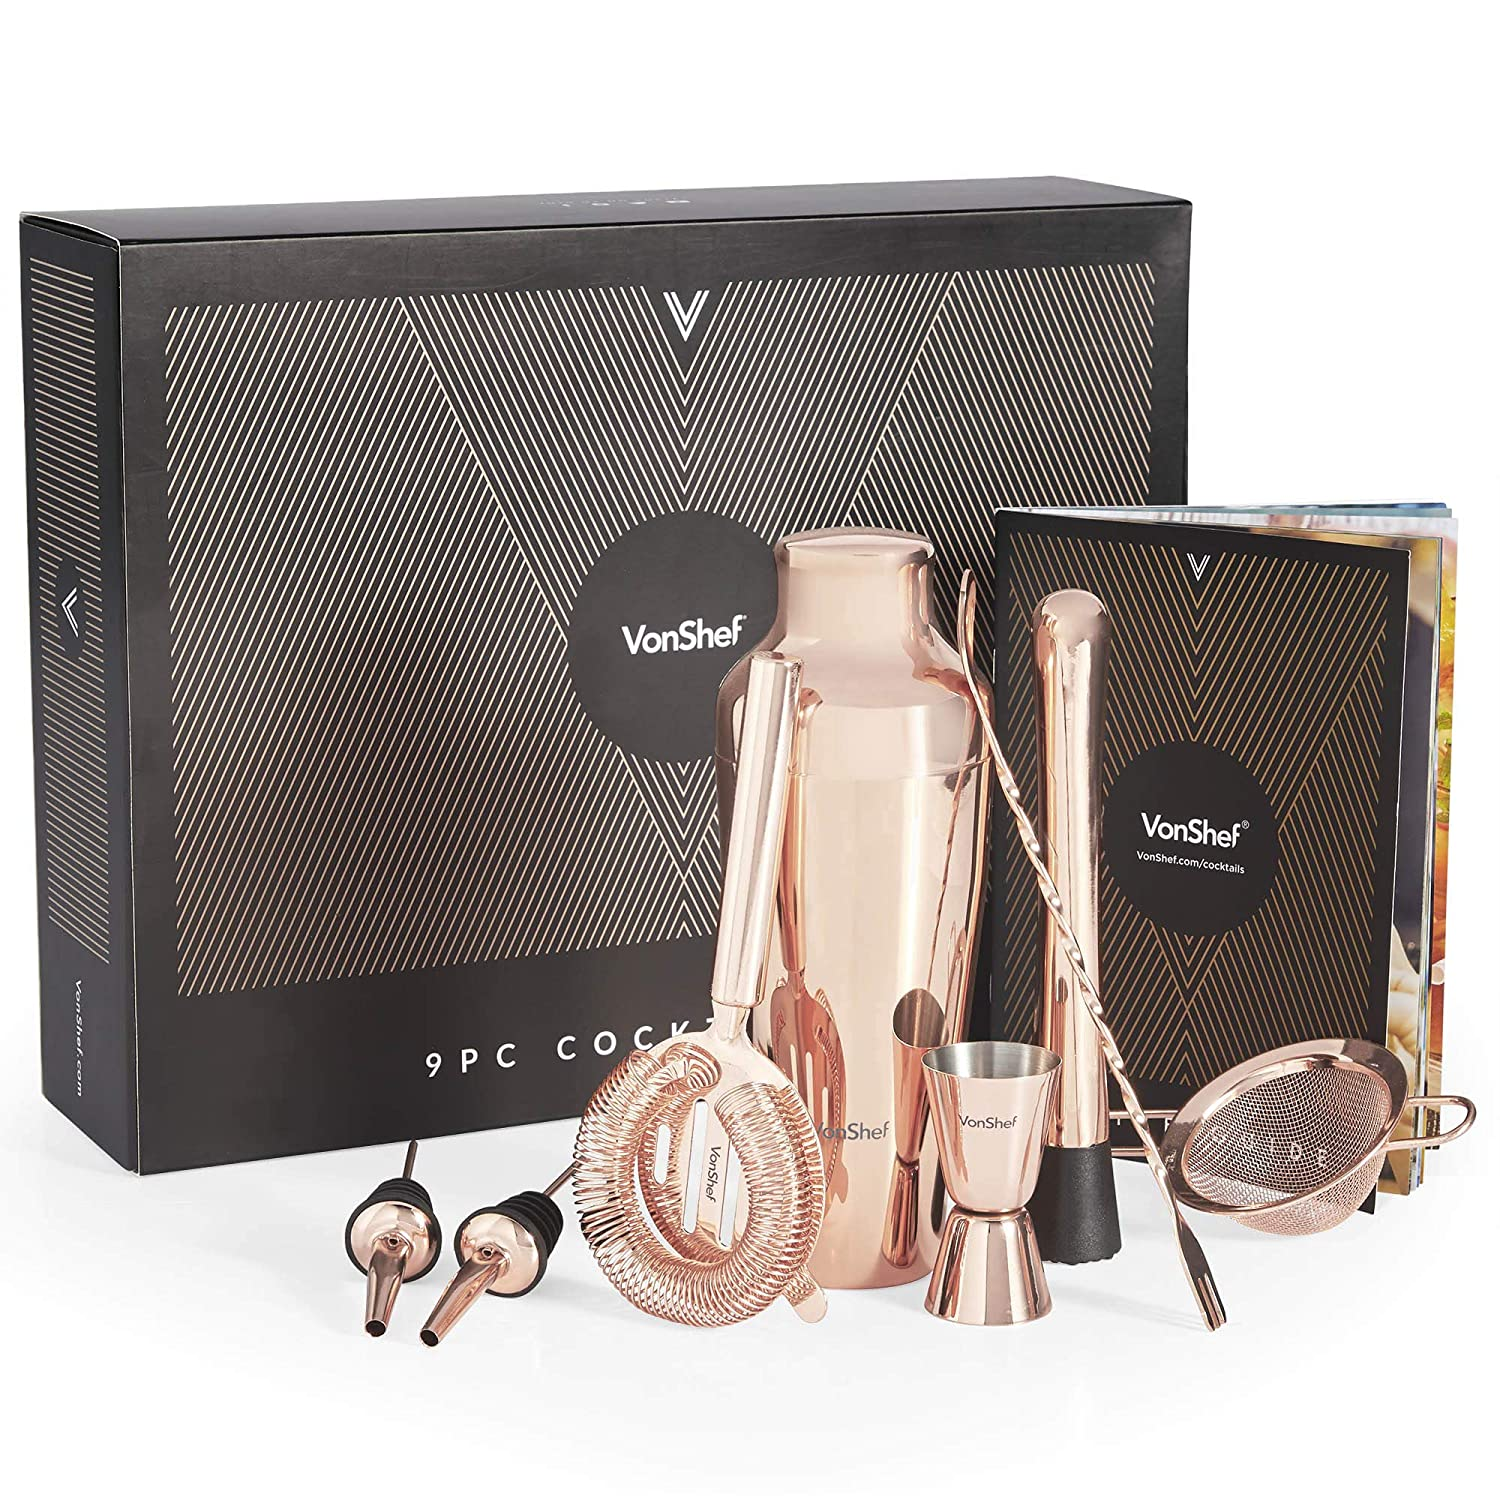 Cocktail Strainers Copper VonShef Parisian Cocktail Shaker Barware Set in Gift Box with Recipe Guide Jigger 9 Piece Set Muddler and Pourers Twisted Bar Spoon 17oz